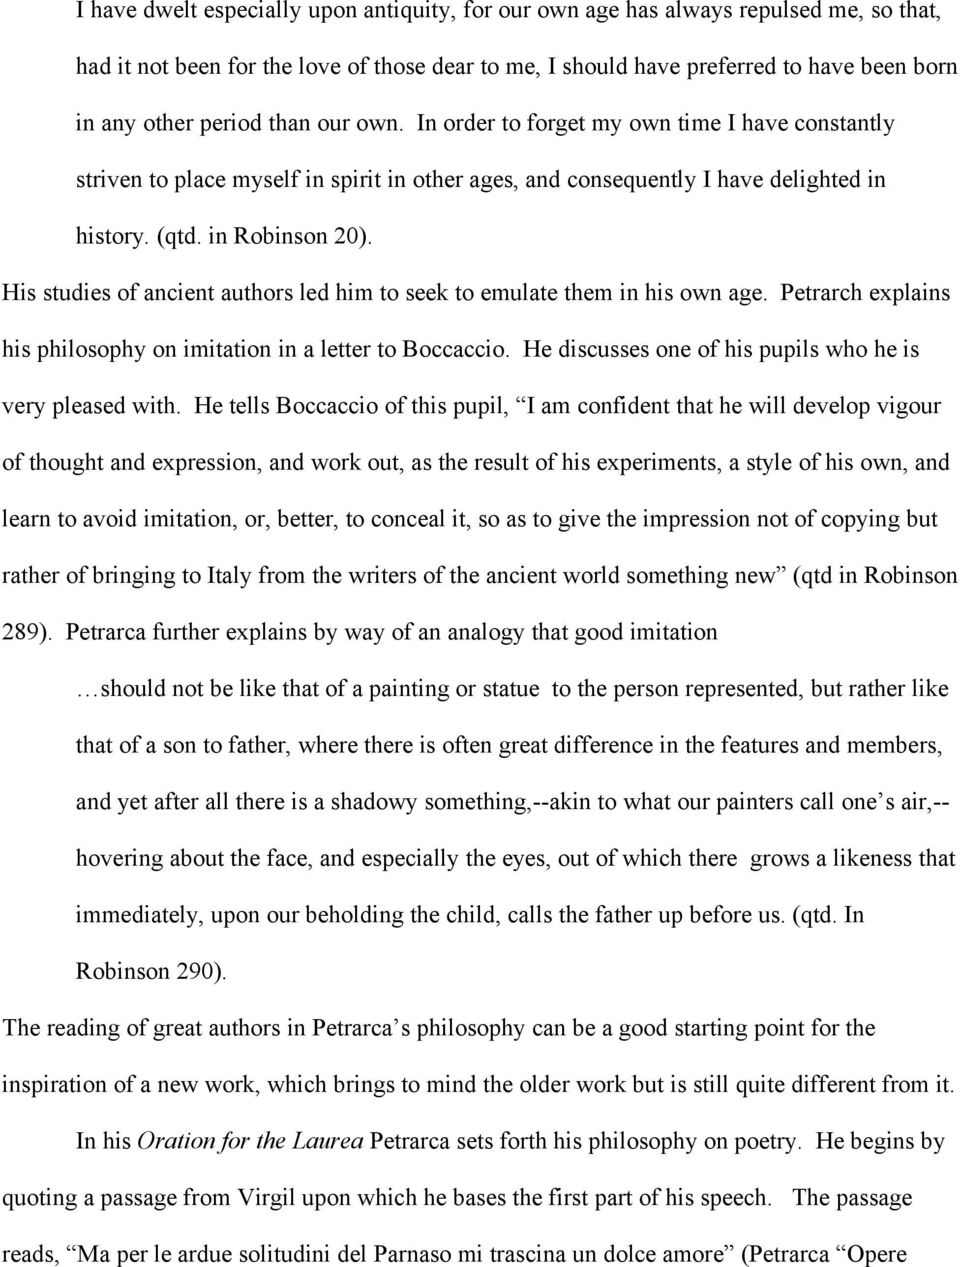 His studies of ancient authors led him to seek to emulate them in his own age. Petrarch explains his philosophy on imitation in a letter to Boccaccio.